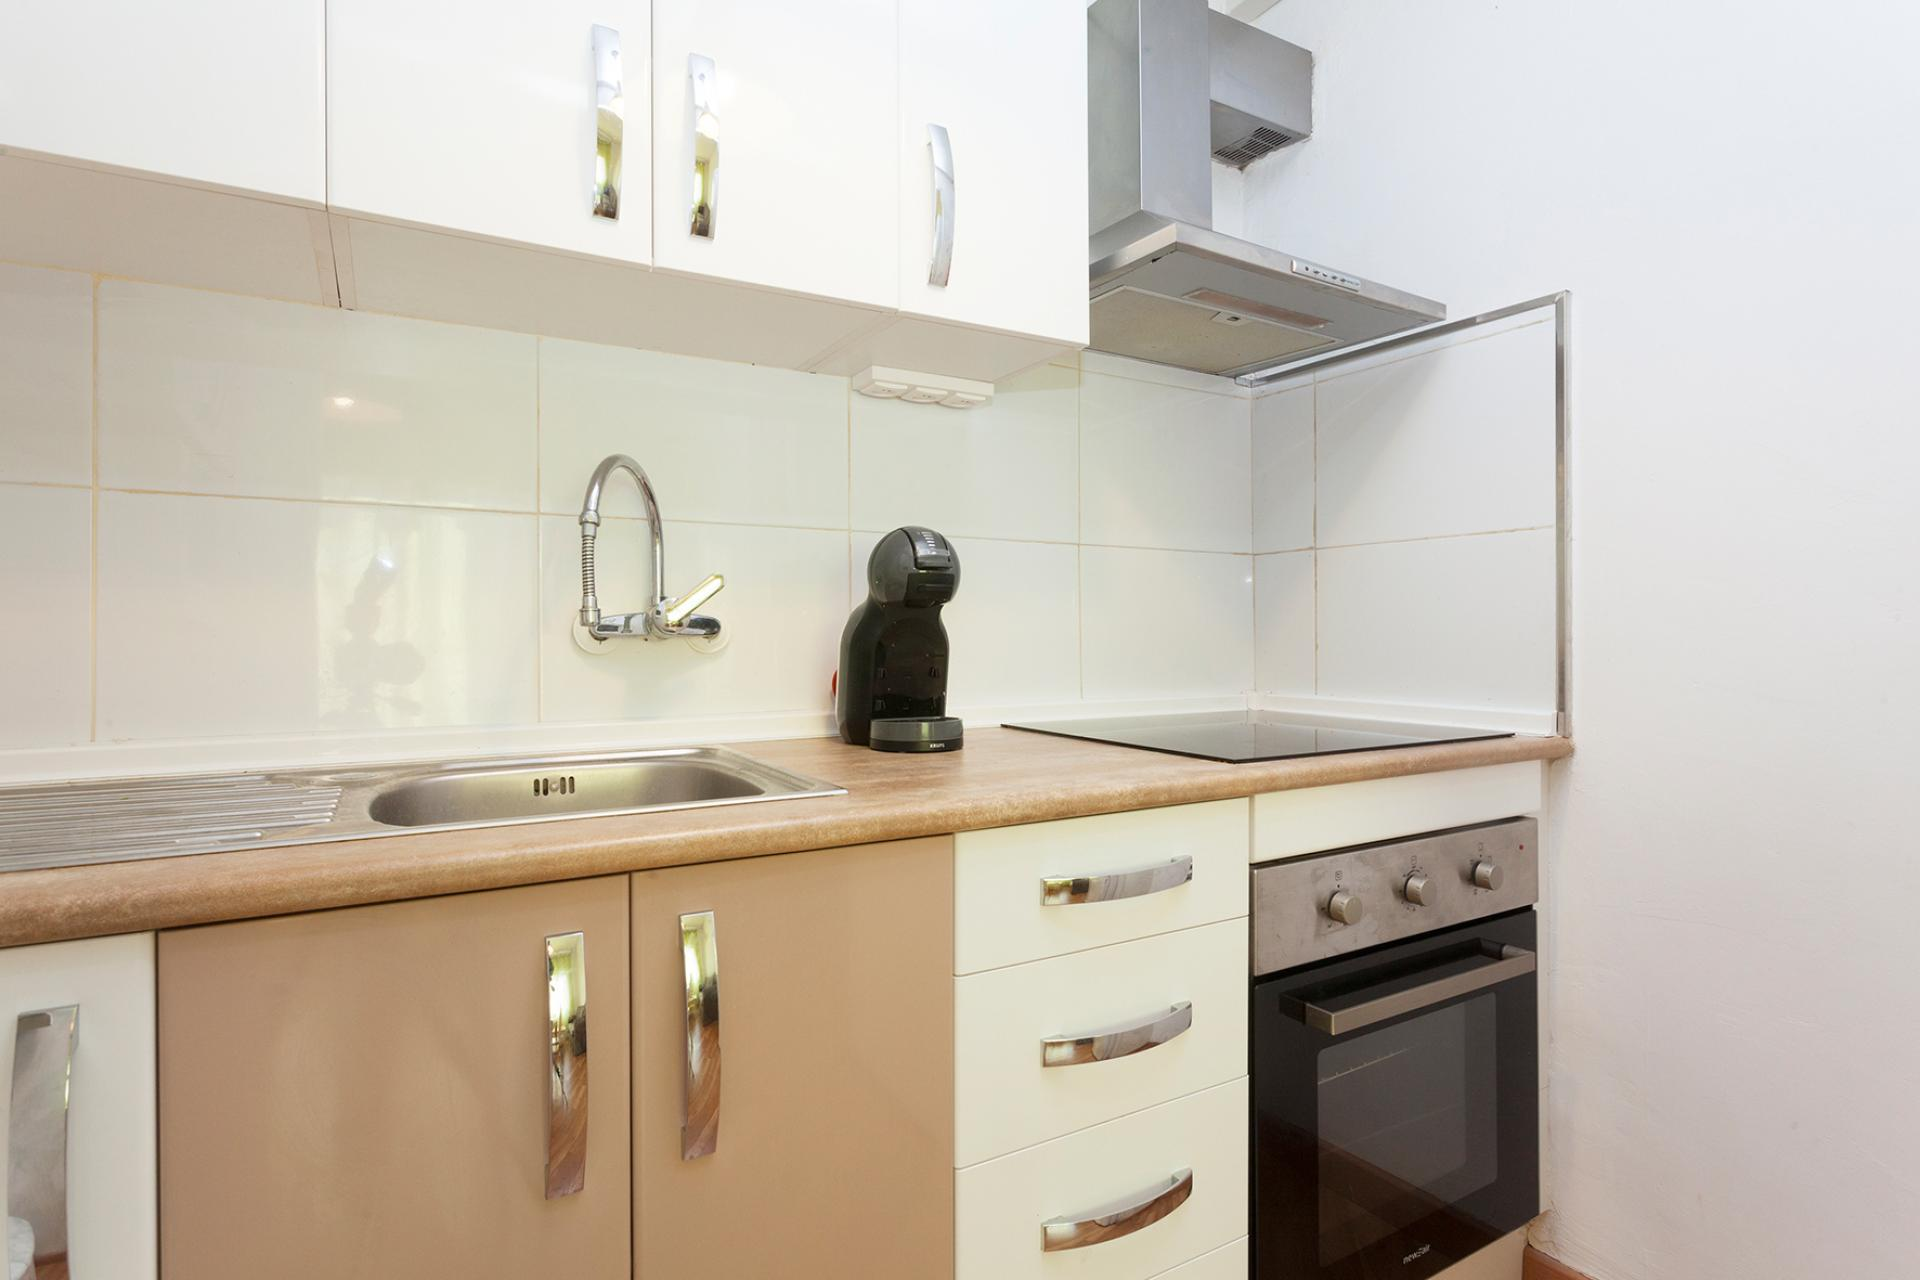 Shbarcelona flat for rent lcoated very close to sants for Kitchen gadgets barcelona